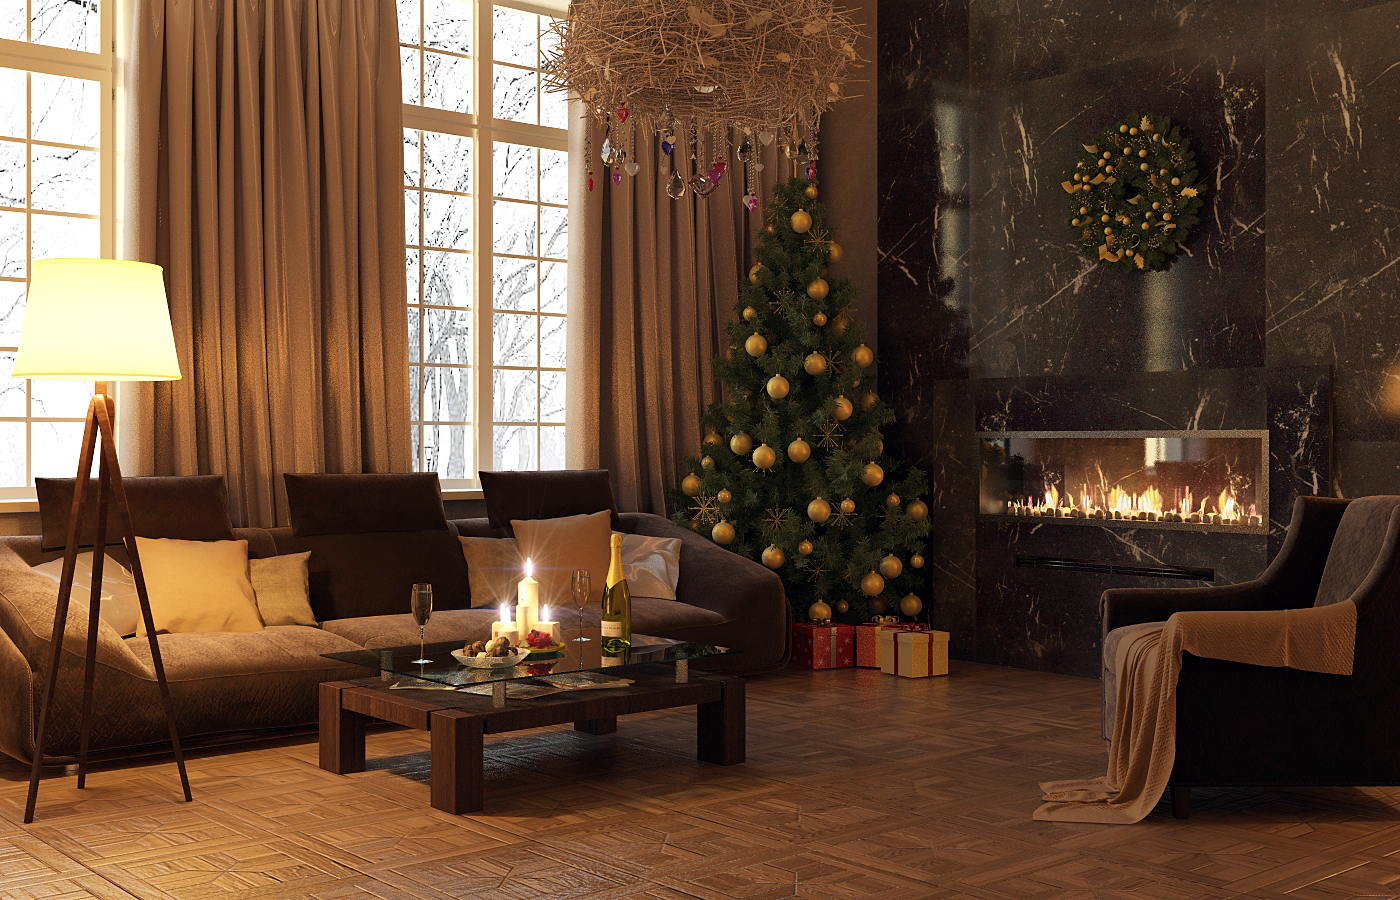 Get Inspired With These Amazing Living Rooms Decor Ideas for Christmas living rooms decor ideas for christmas Get Inspired With These Amazing Living Rooms Decor Ideas for Christmas Get Inspired With These Amazing Living Rooms Decor Ideas for Christmas5